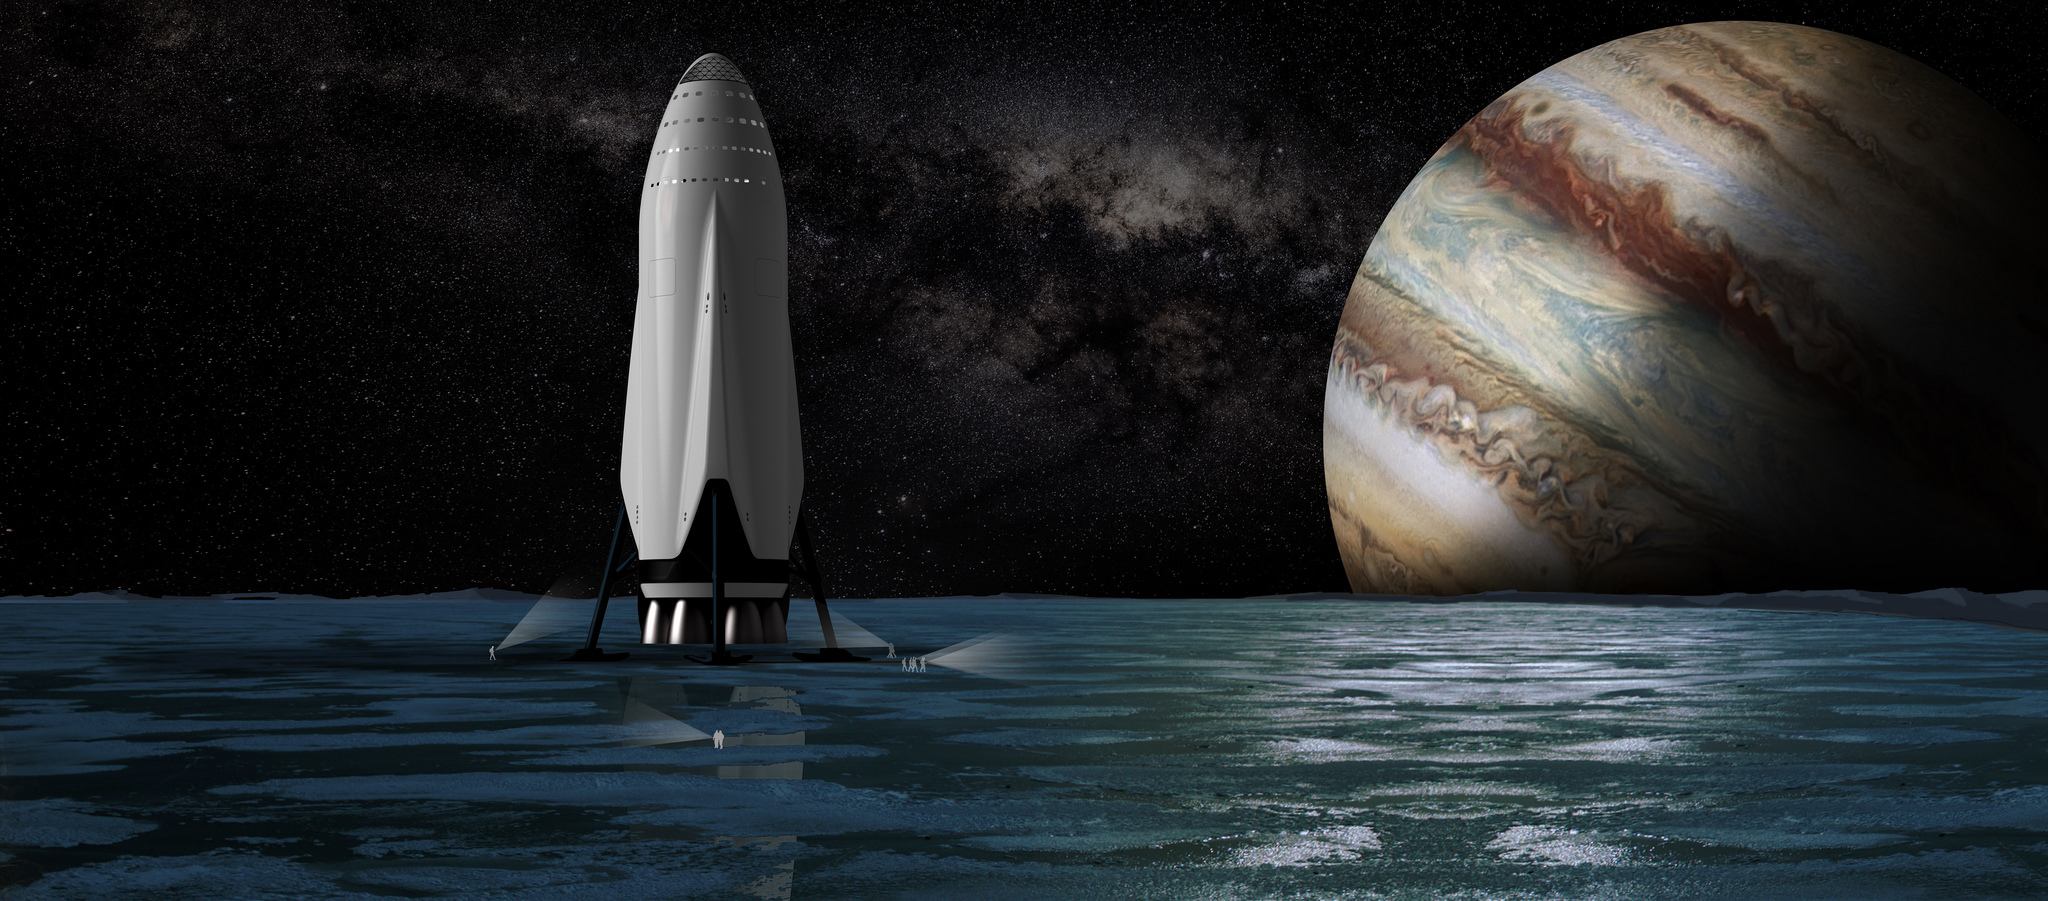 SpaceX\'s Mars Spaceship Could Explore the Entire Solar System, Elon ...